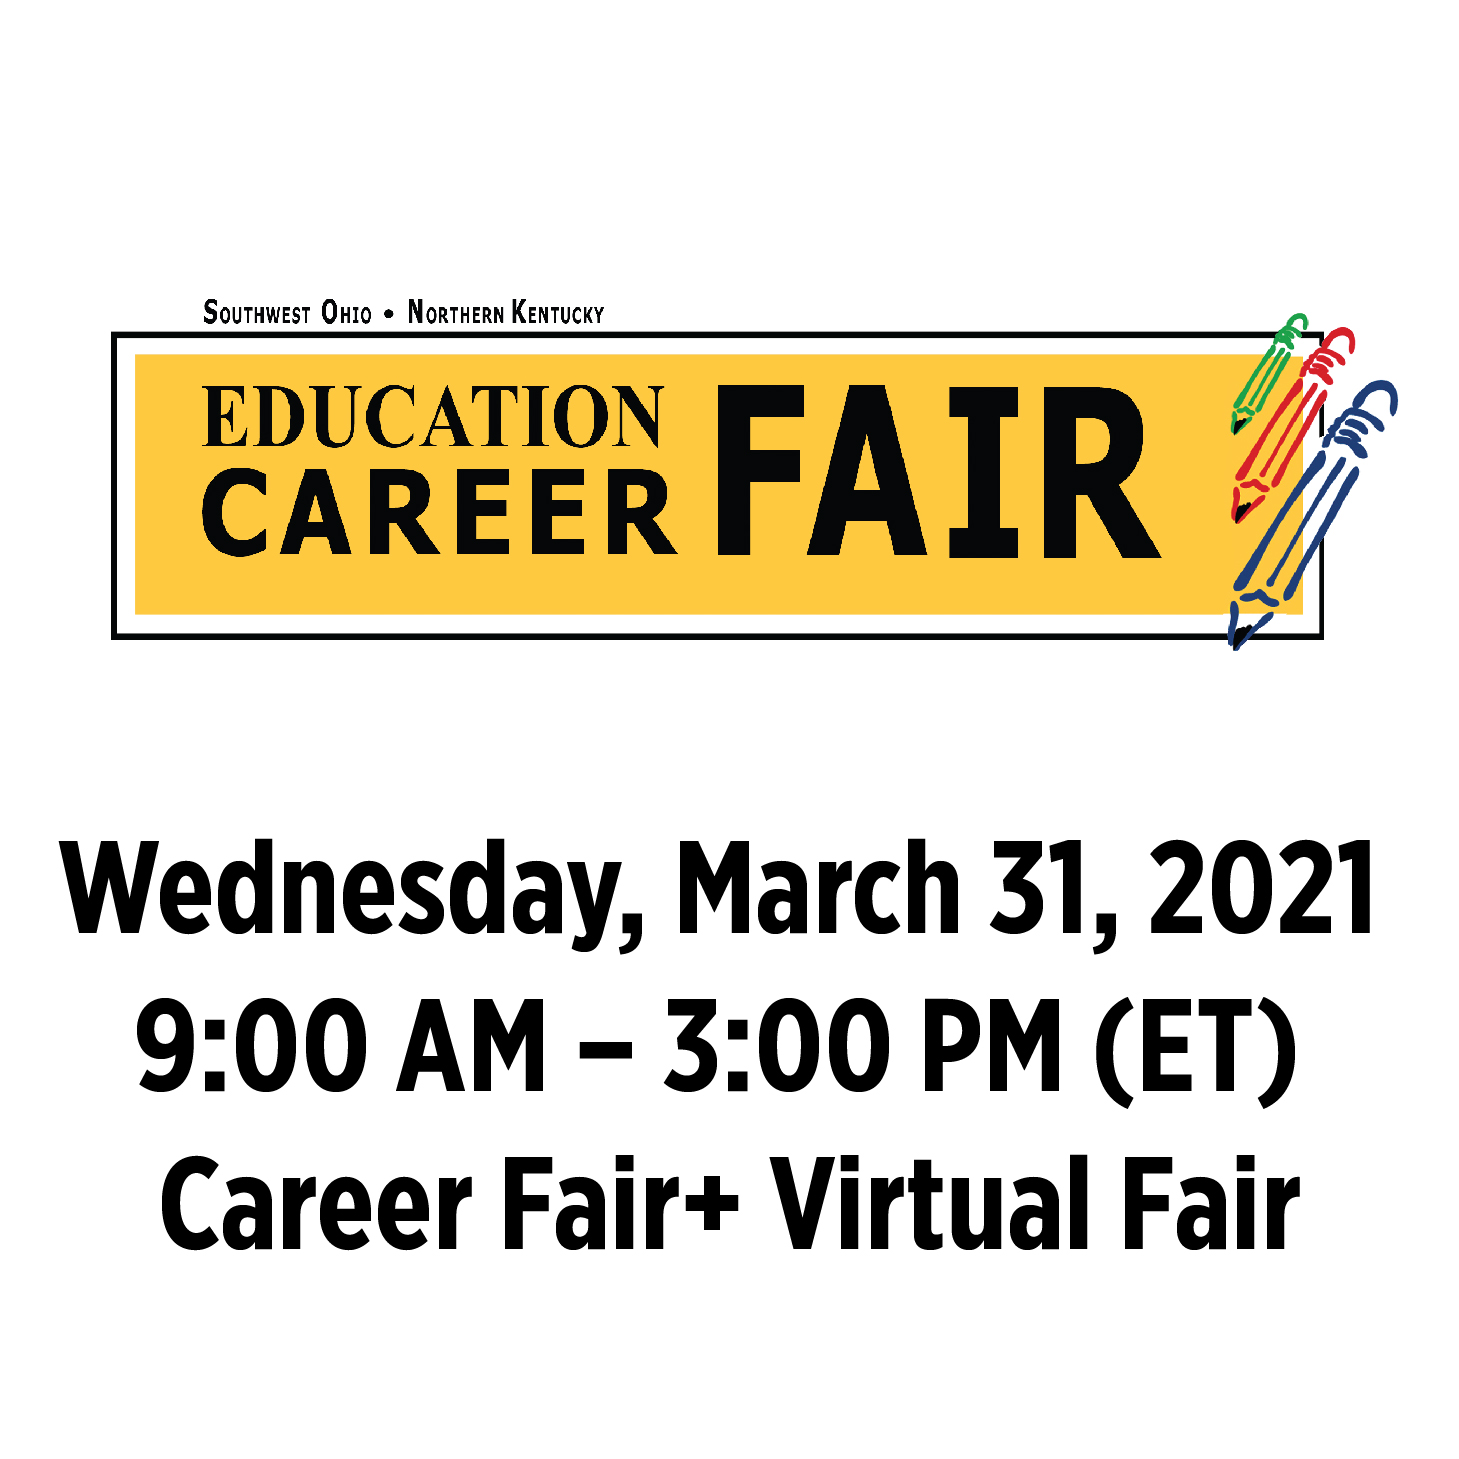 Southwest Ohio, Northern Kentucky Education Career Fair on Wednesday, March 31, 2021 from 9am to 3pm ET on the Career Fair+ Virtual Fair platform